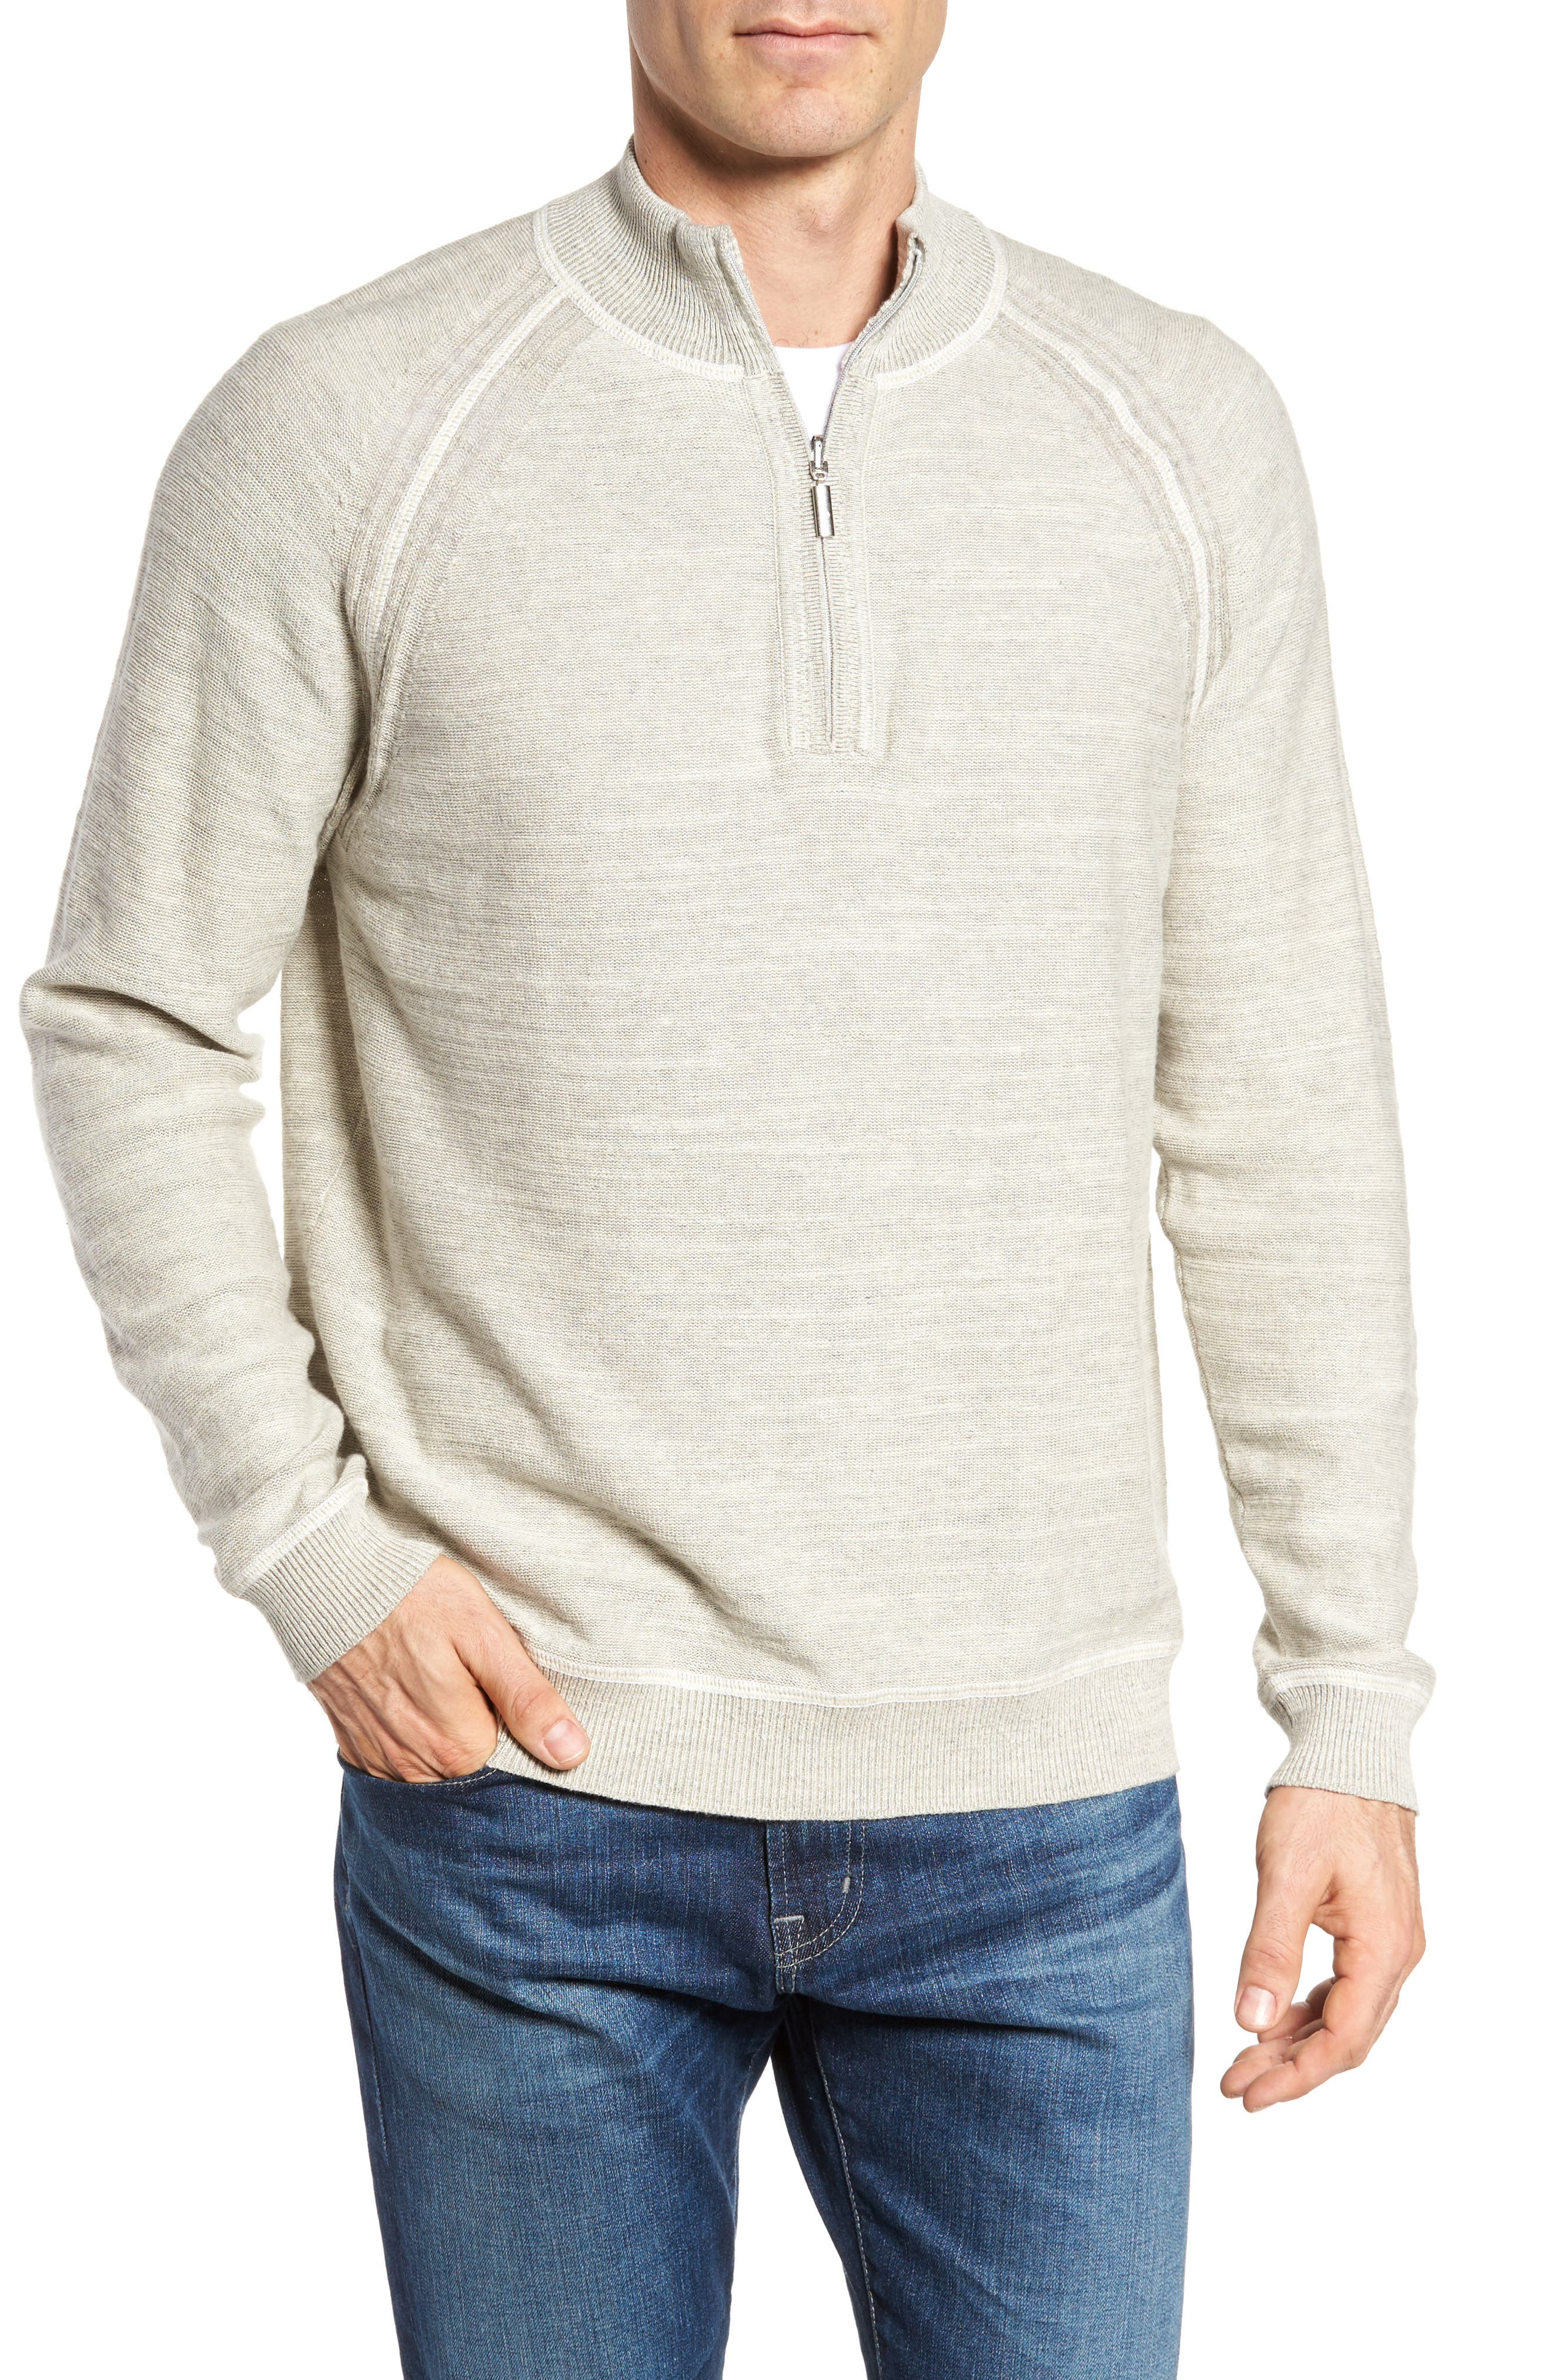 Sandy Bay Half-Zip Pullover,                         Main,                         color, 200